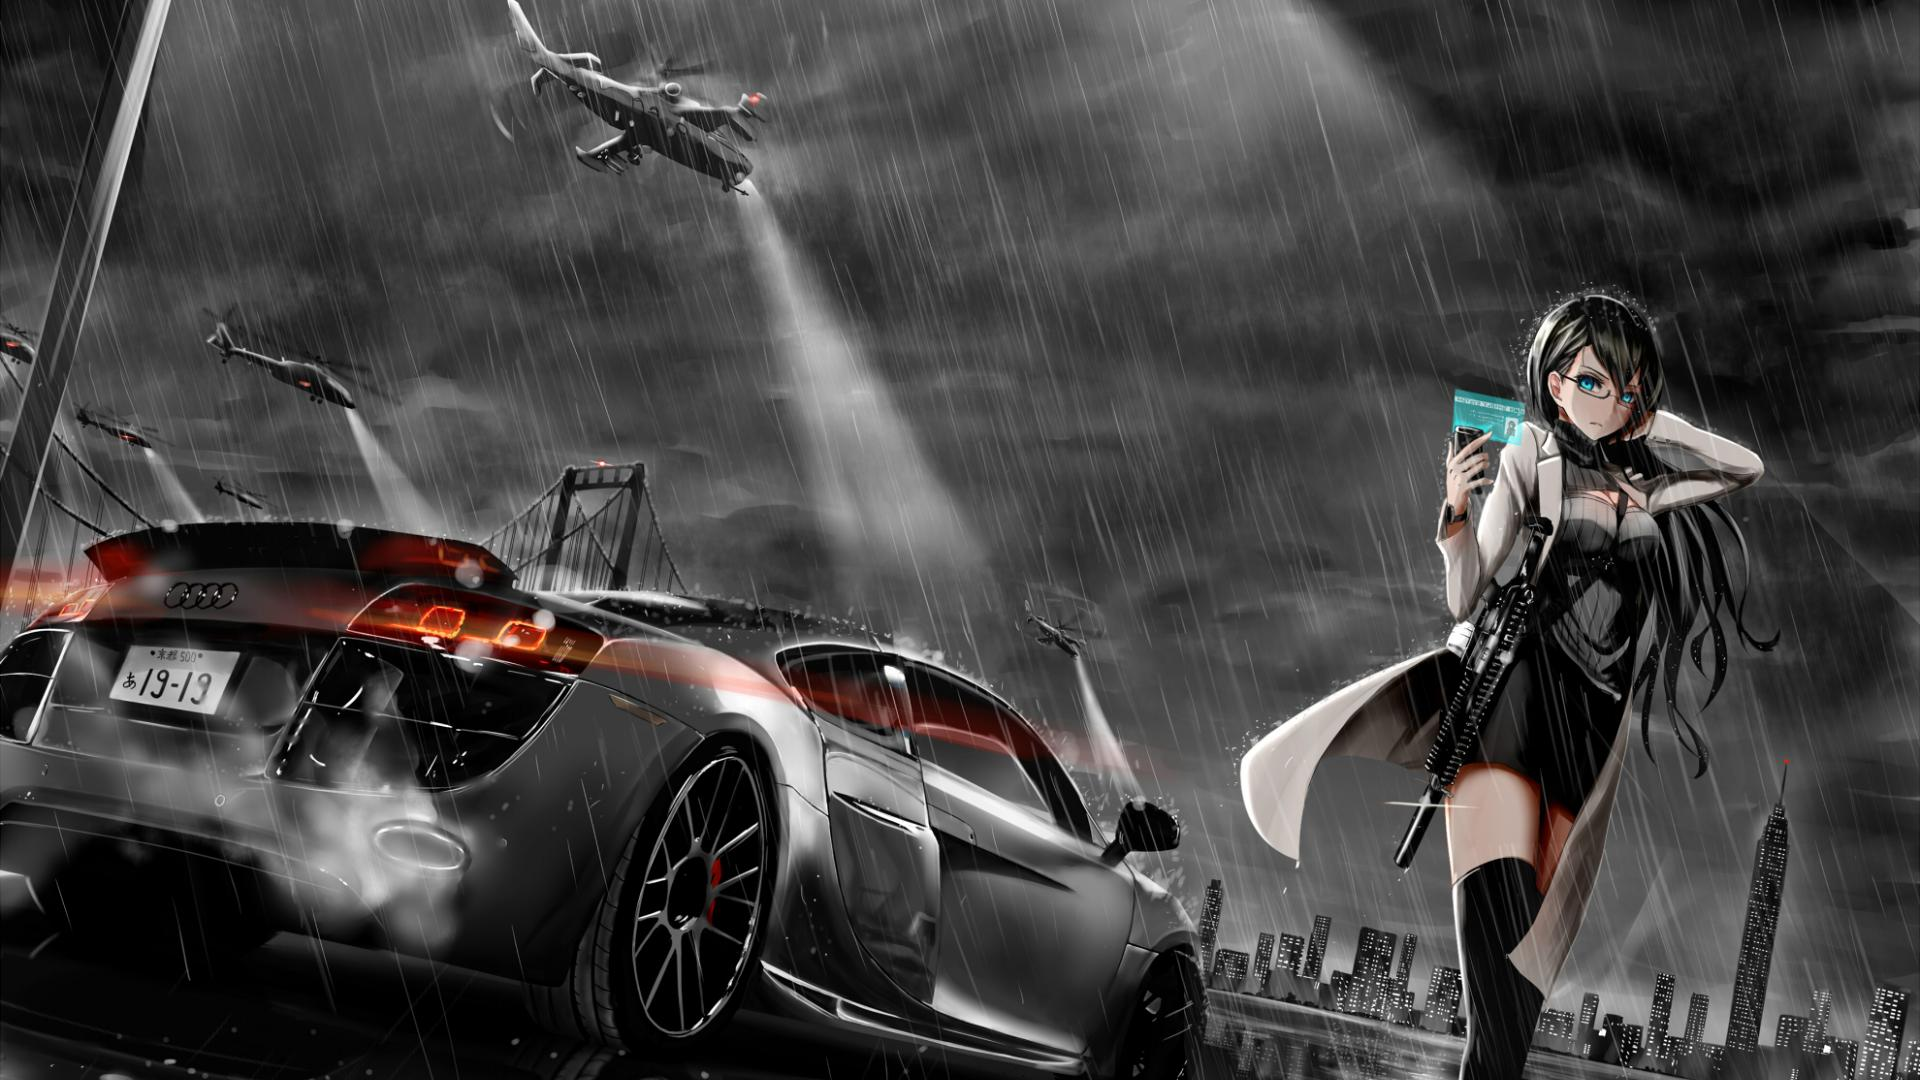 Anime Girl And Cars Hd Wallpaper - Anime Girl And Car , HD Wallpaper & Backgrounds